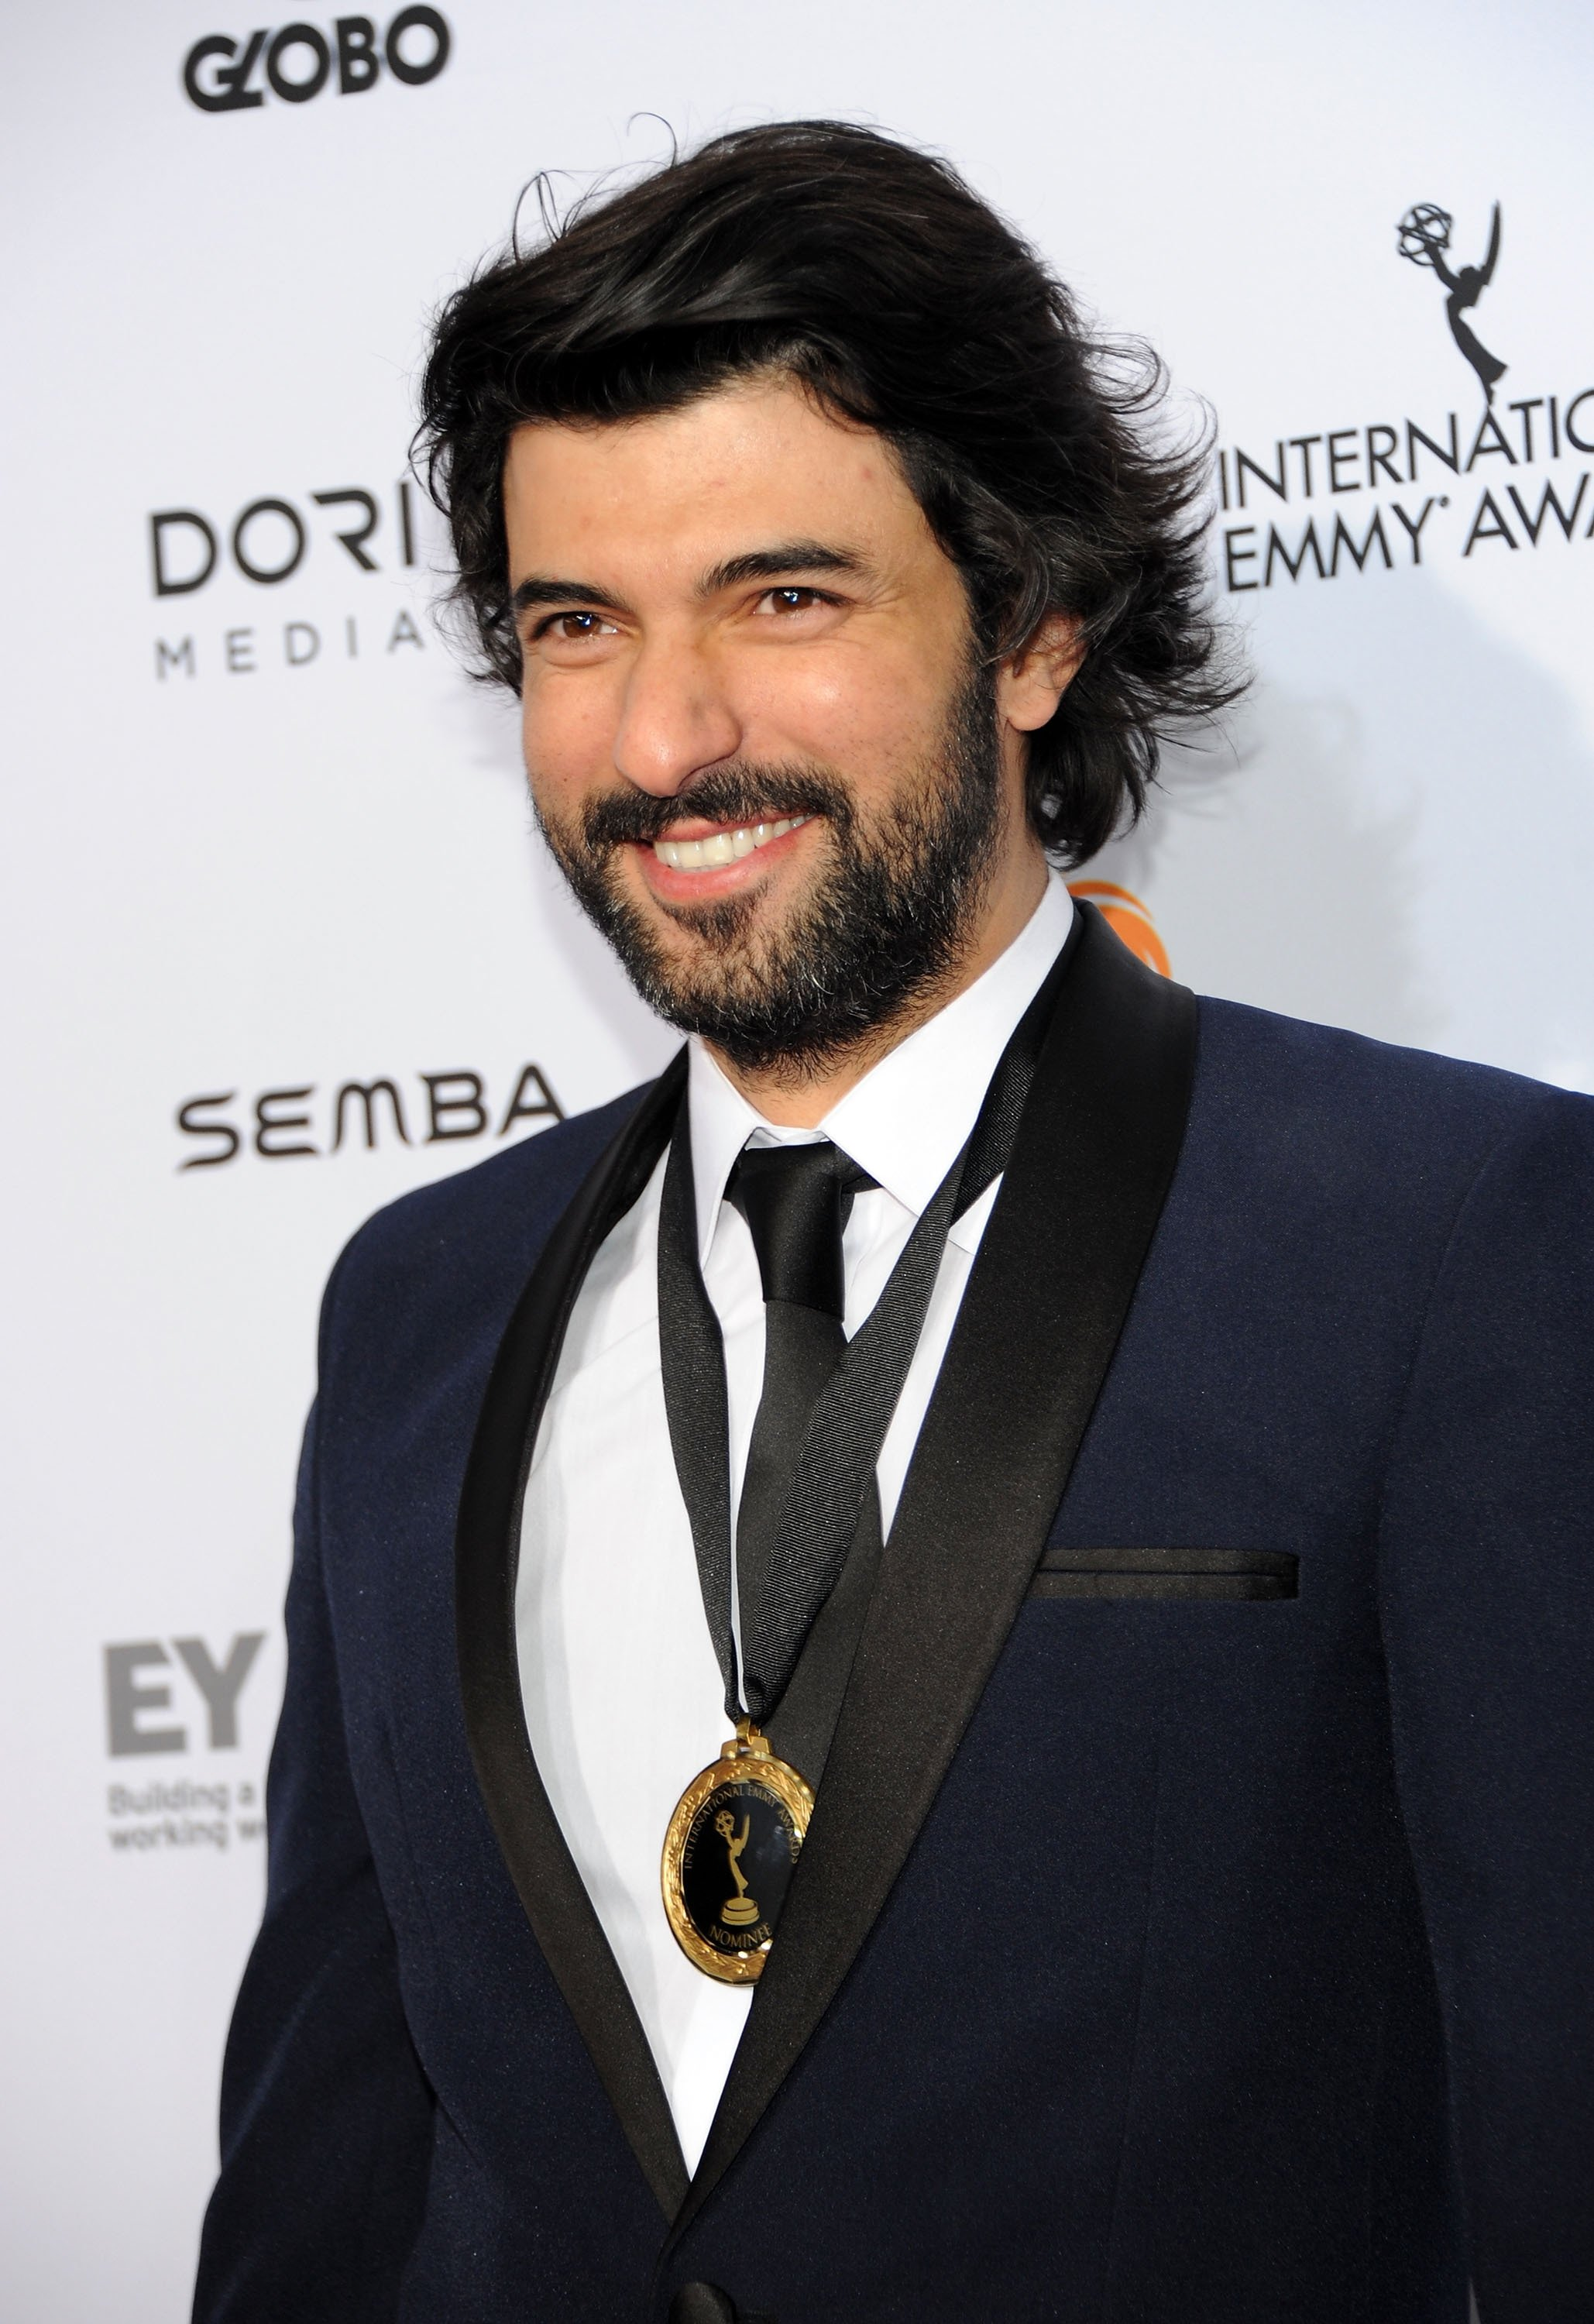 Best actor nominee Engin Akyürek attends the 43rd International Emmy Awards on November 23, 2015, in New York City.  (Getty Images)